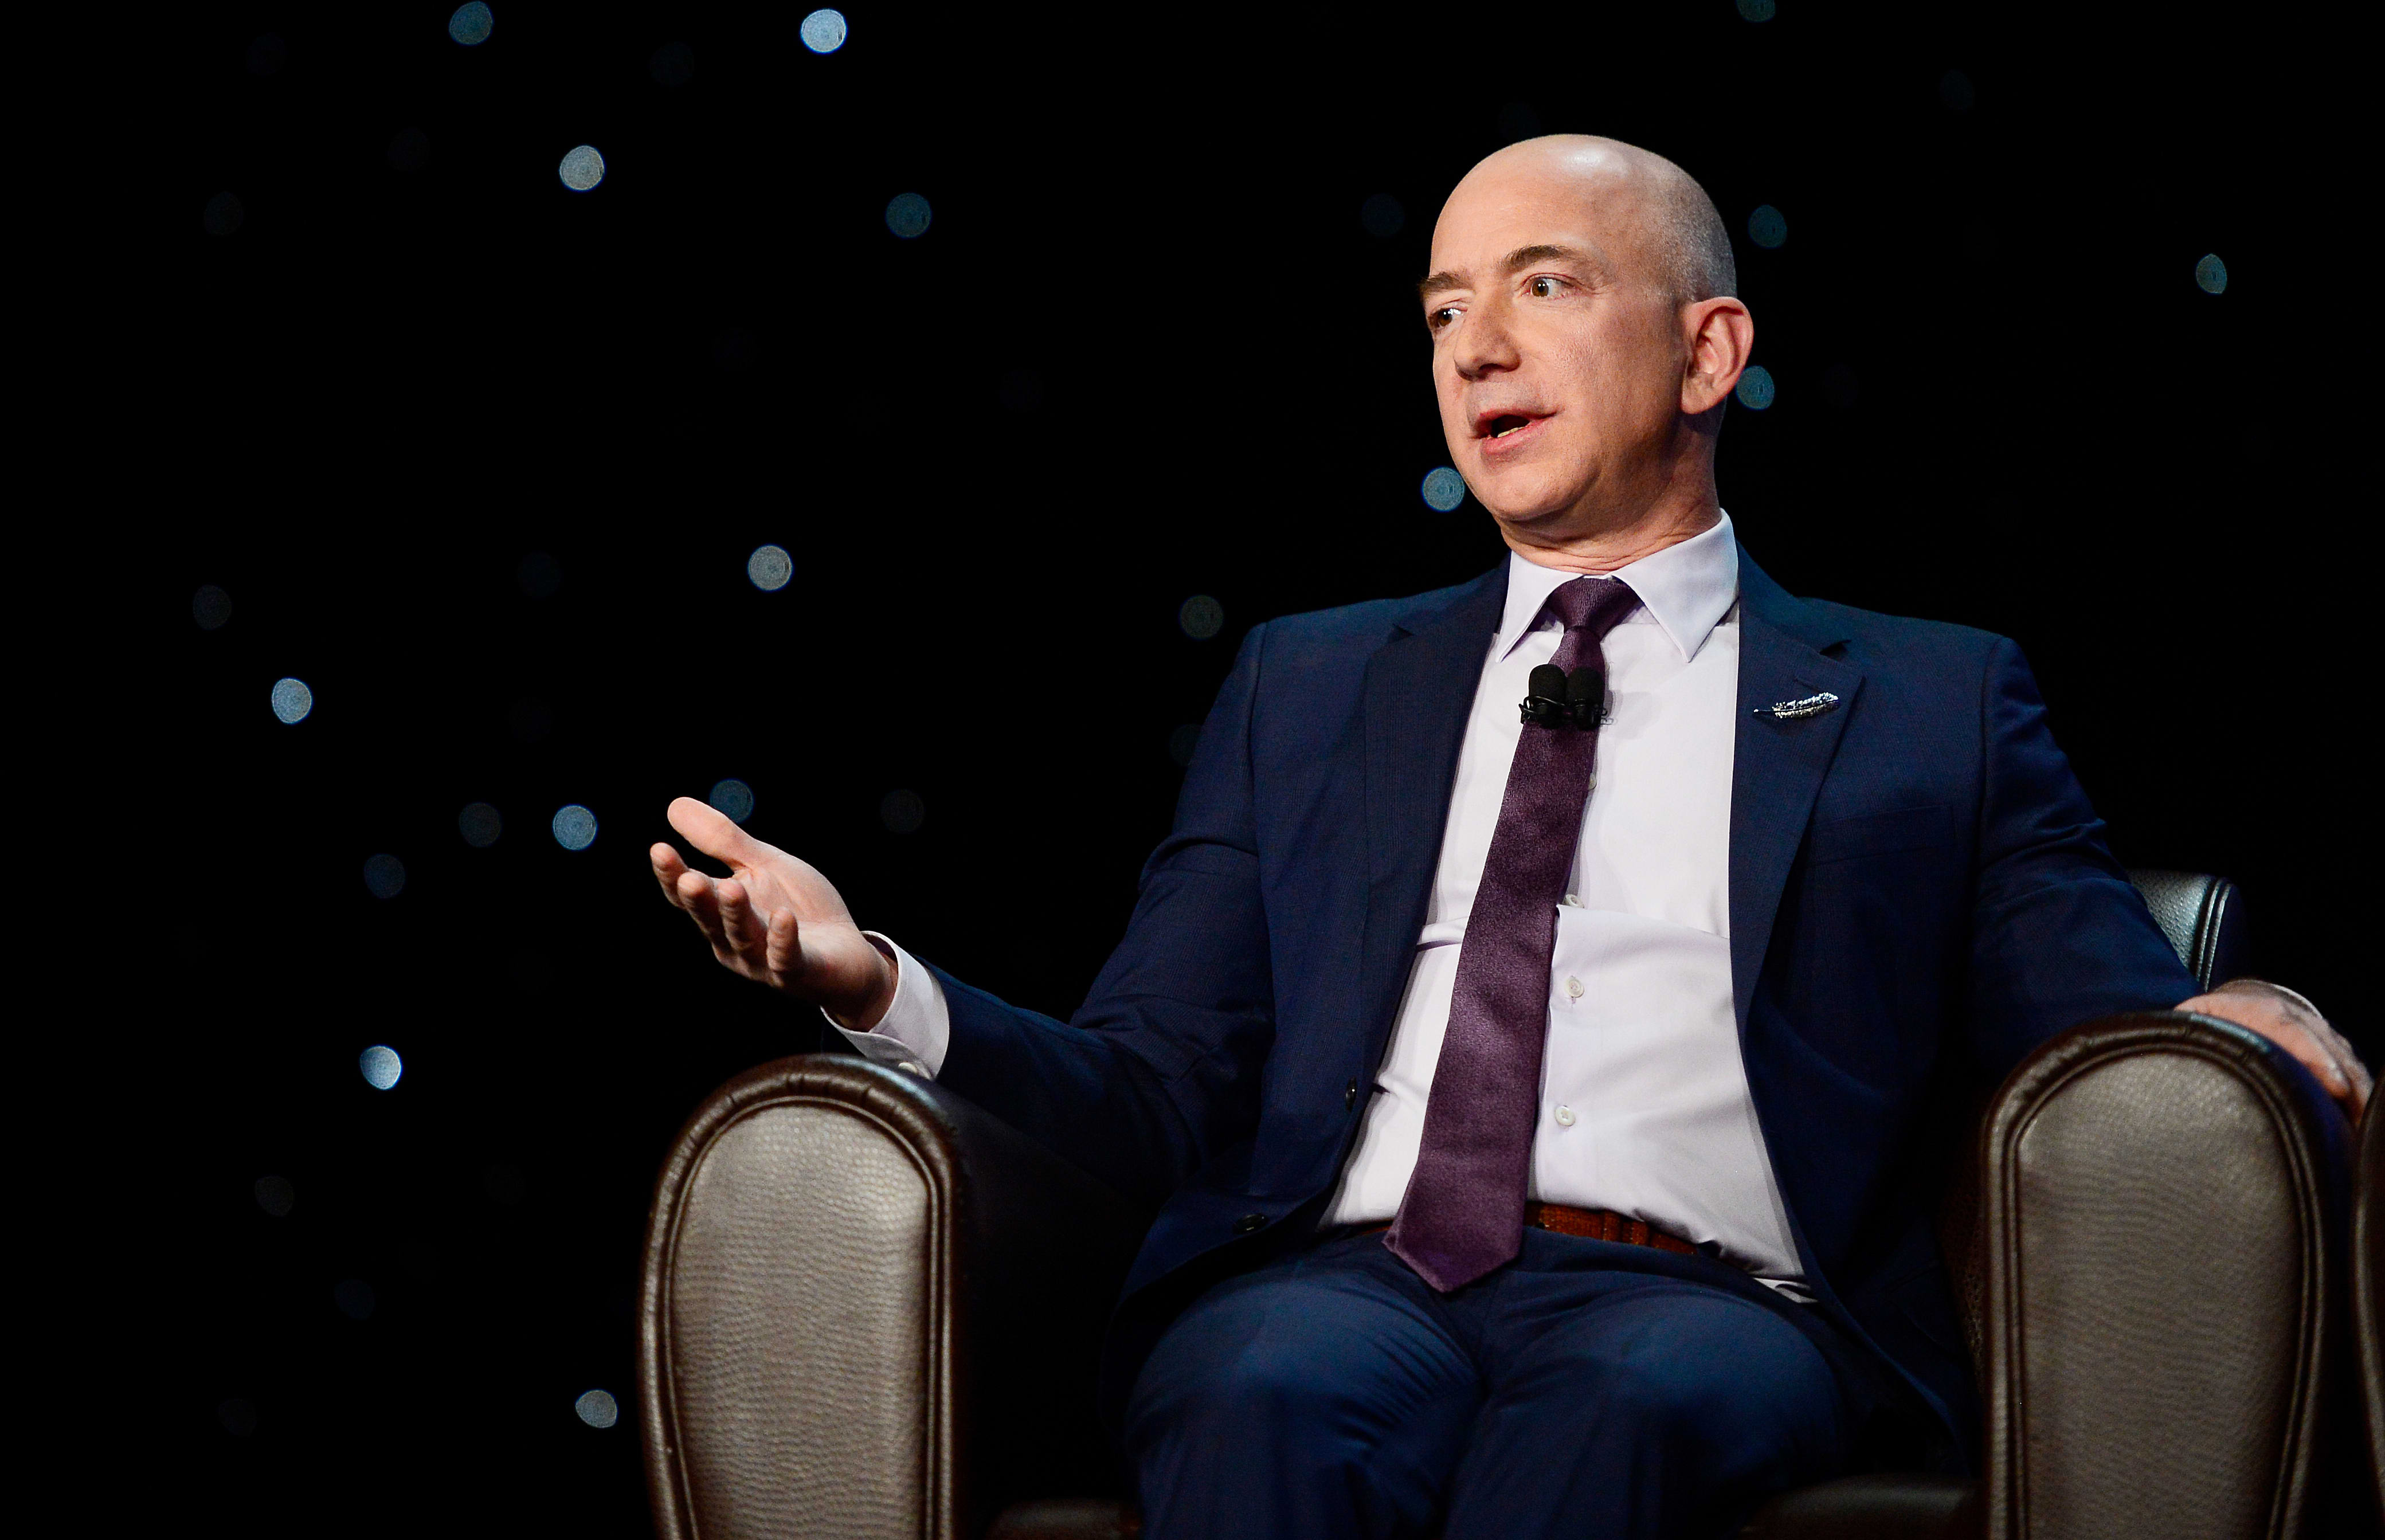 Jeff Bezos' Blue Origin is looking to hire a developer of habitable space stations